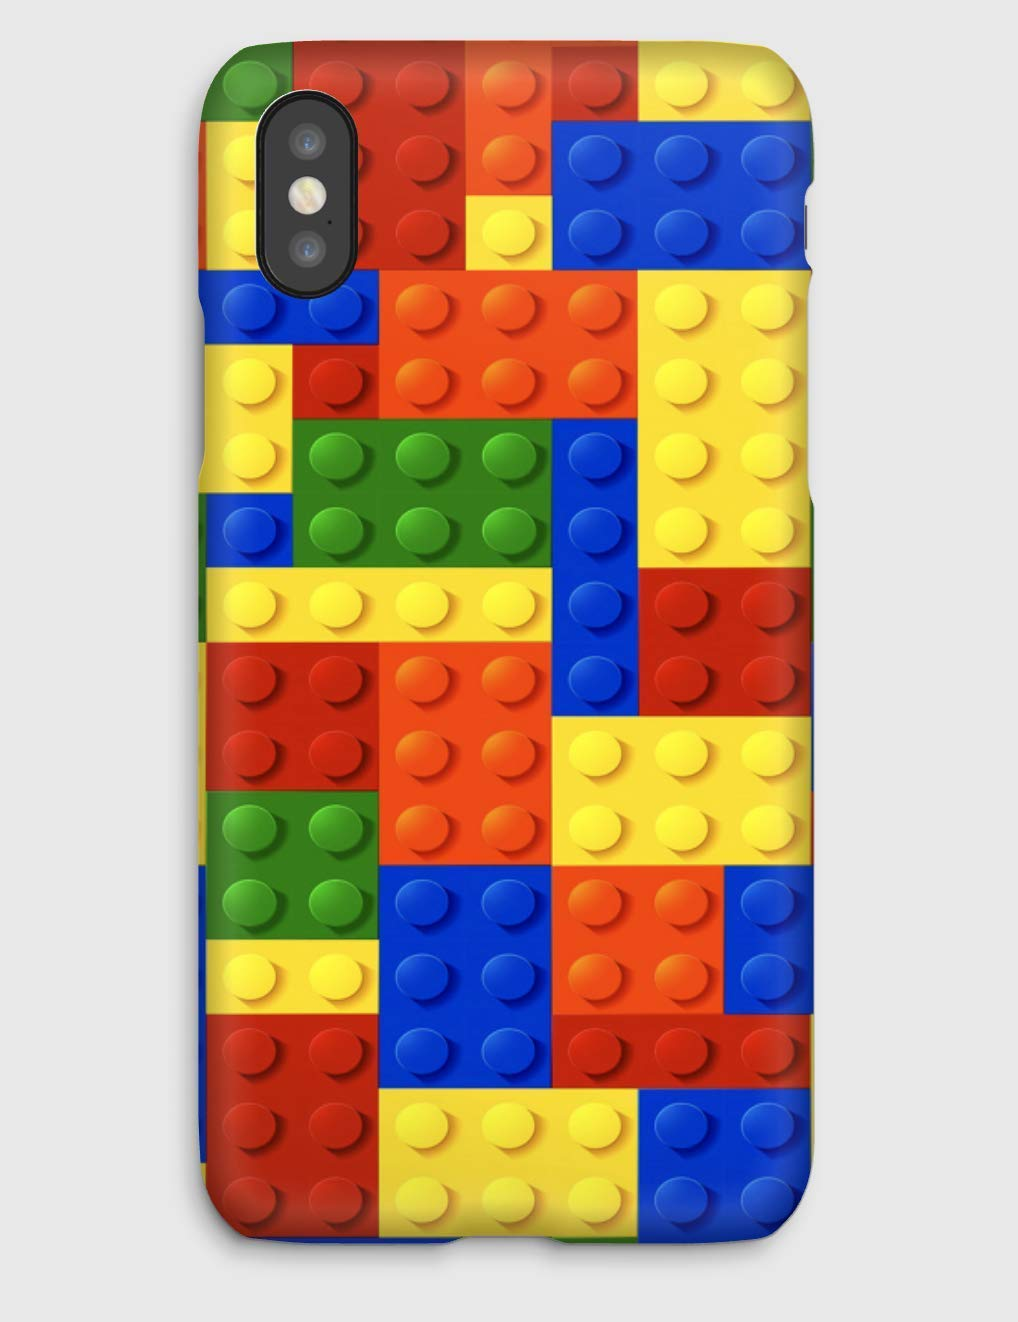 Lego, Cover iPhone X,XS,XS Max,XR, 8, 8+, 7, 7+, 6S, 6, 6S+, 6+, 5C, 5, 5S, 5SE, 4S, 4,